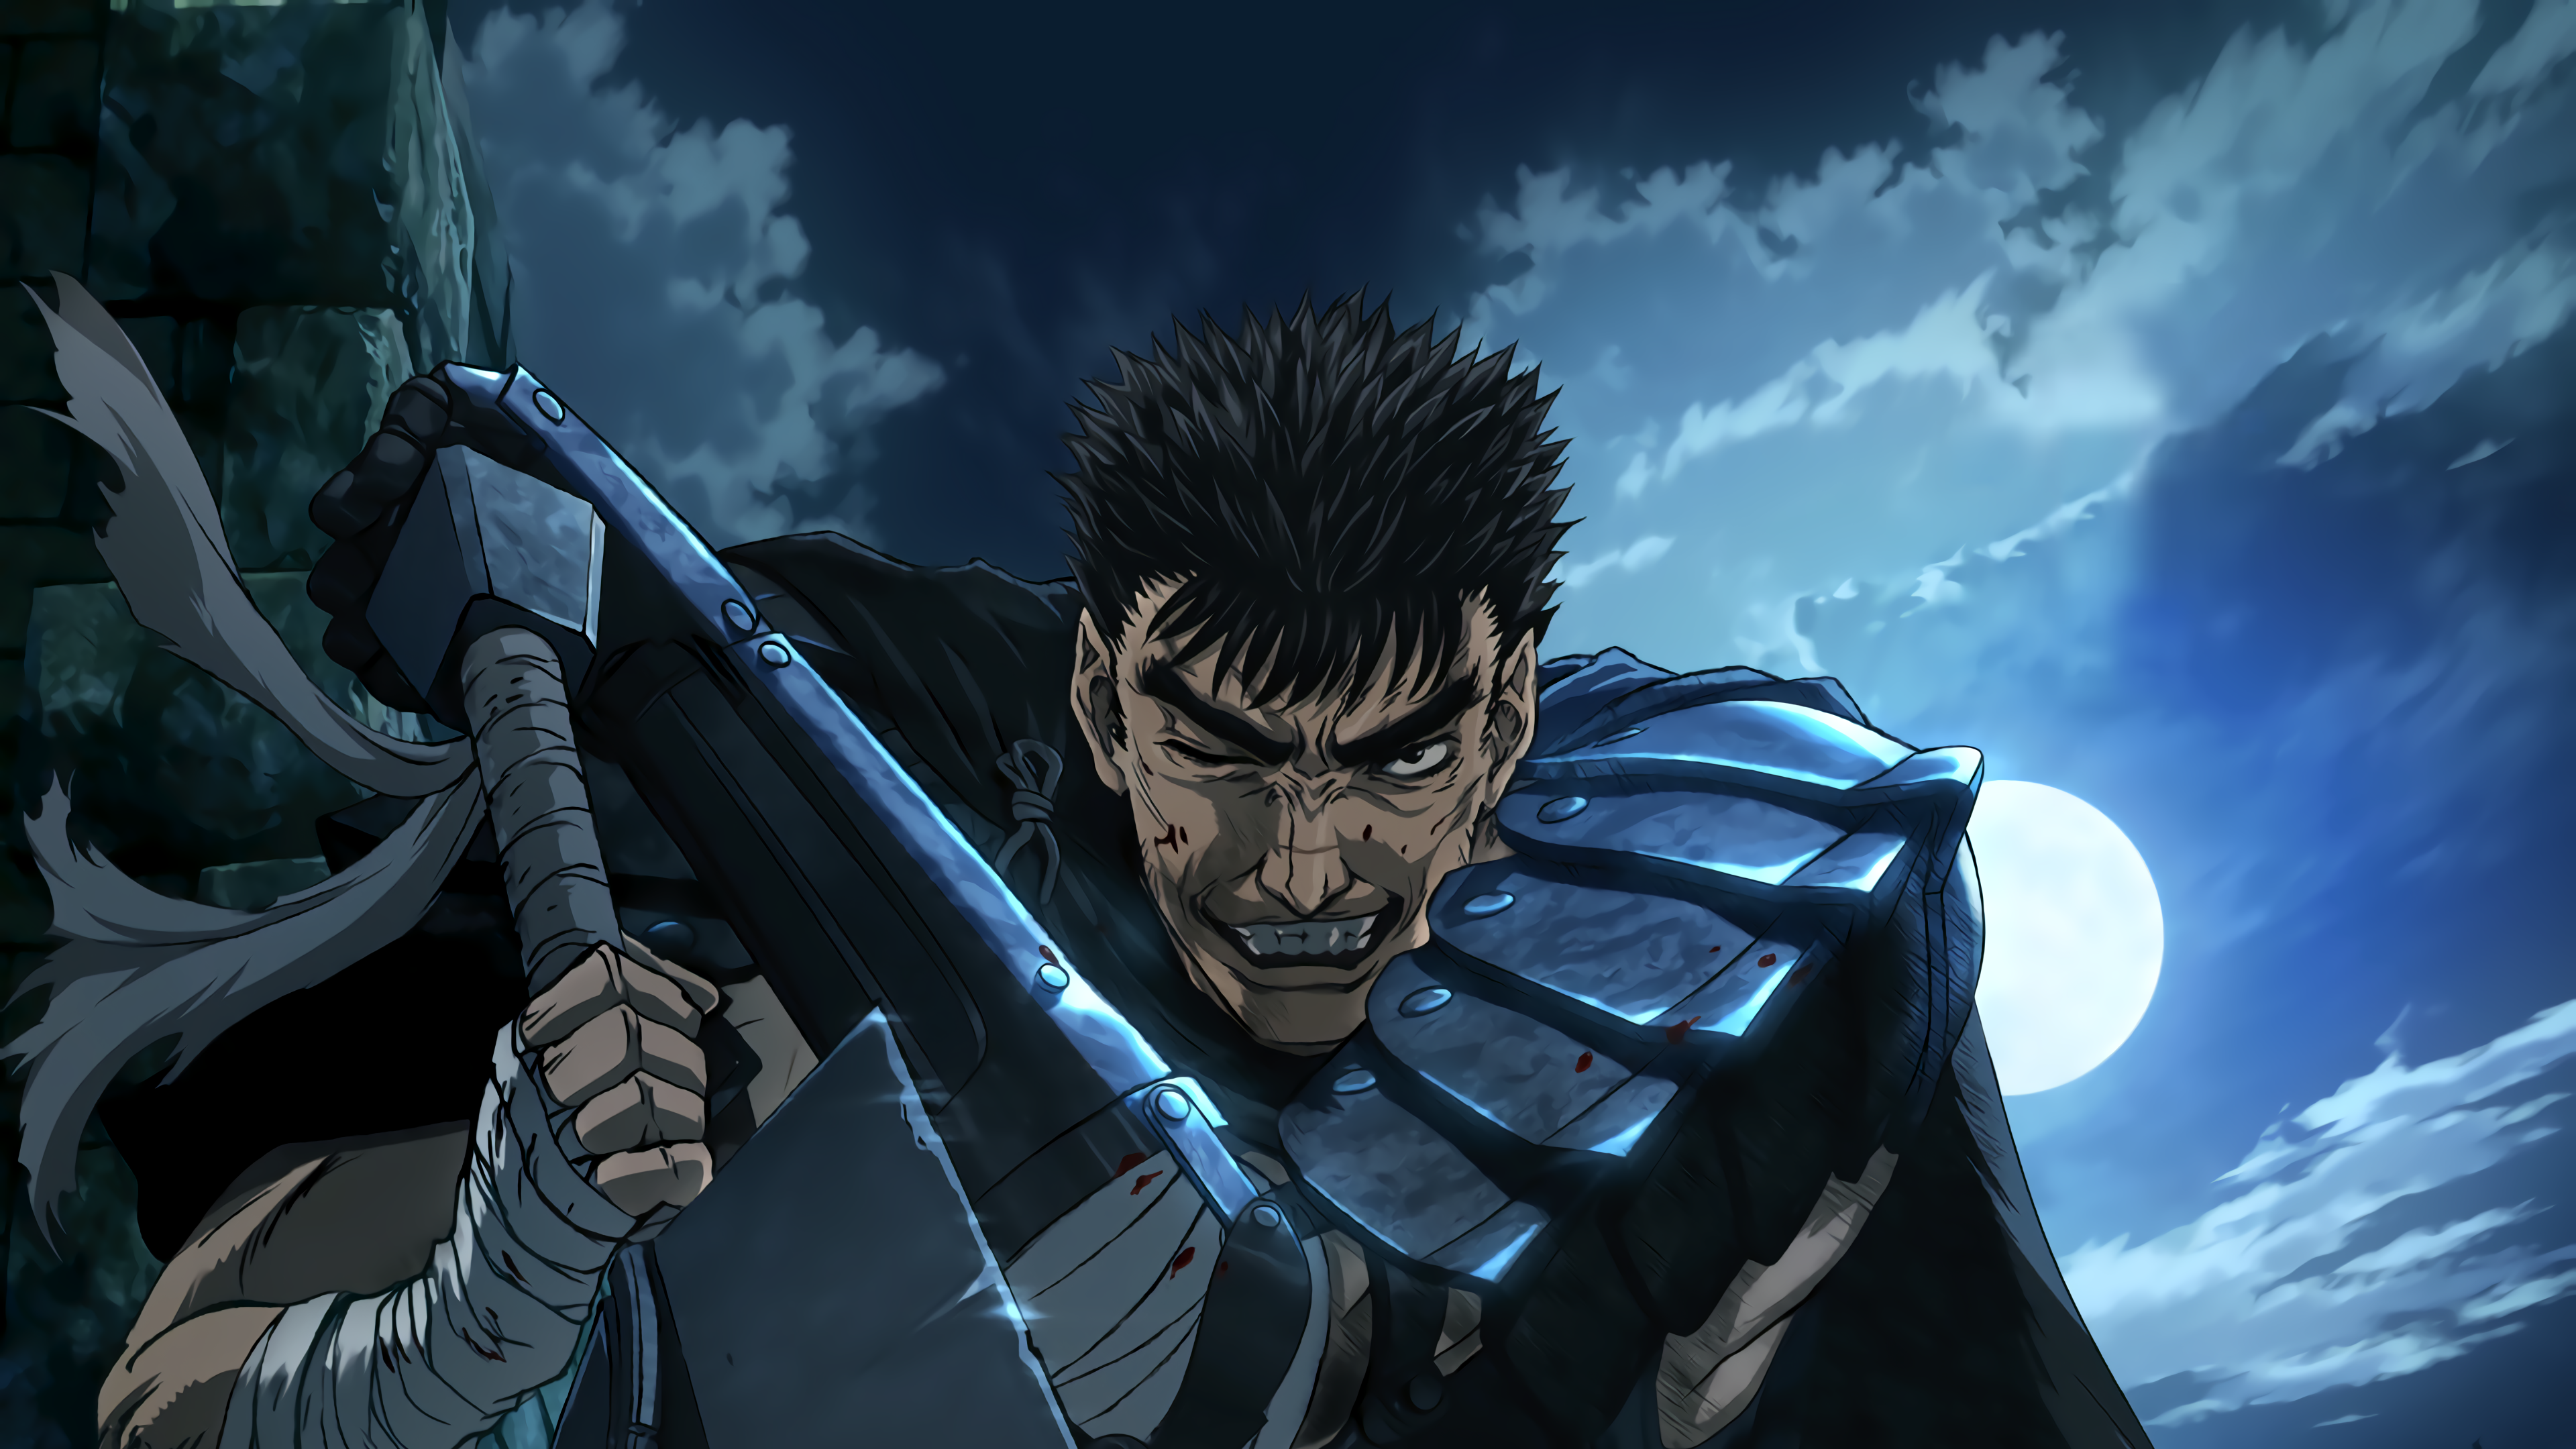 Berserk (2016) HD Wallpapers | Backgrounds - Wallpaper Abyss